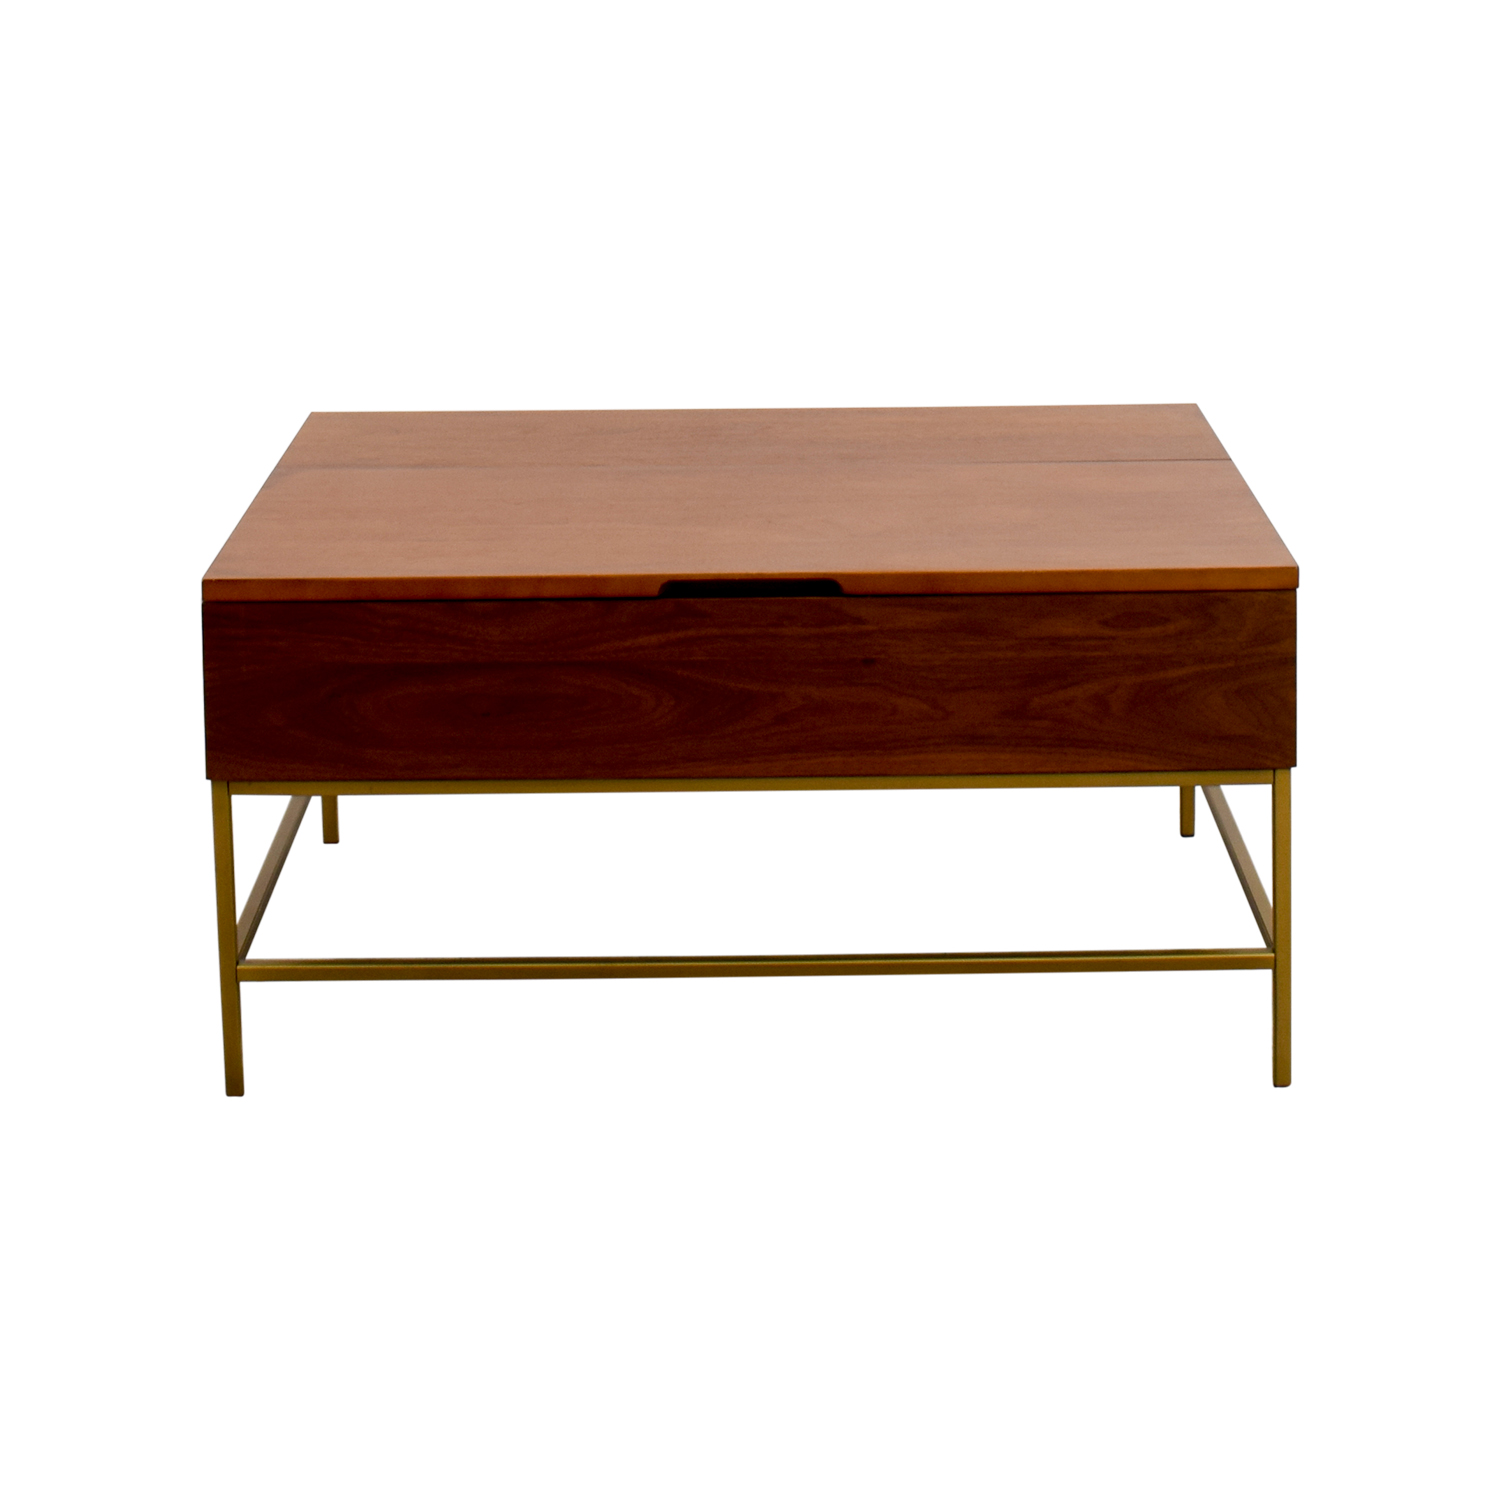 West Elm West Elm Storage Coffee Table brown